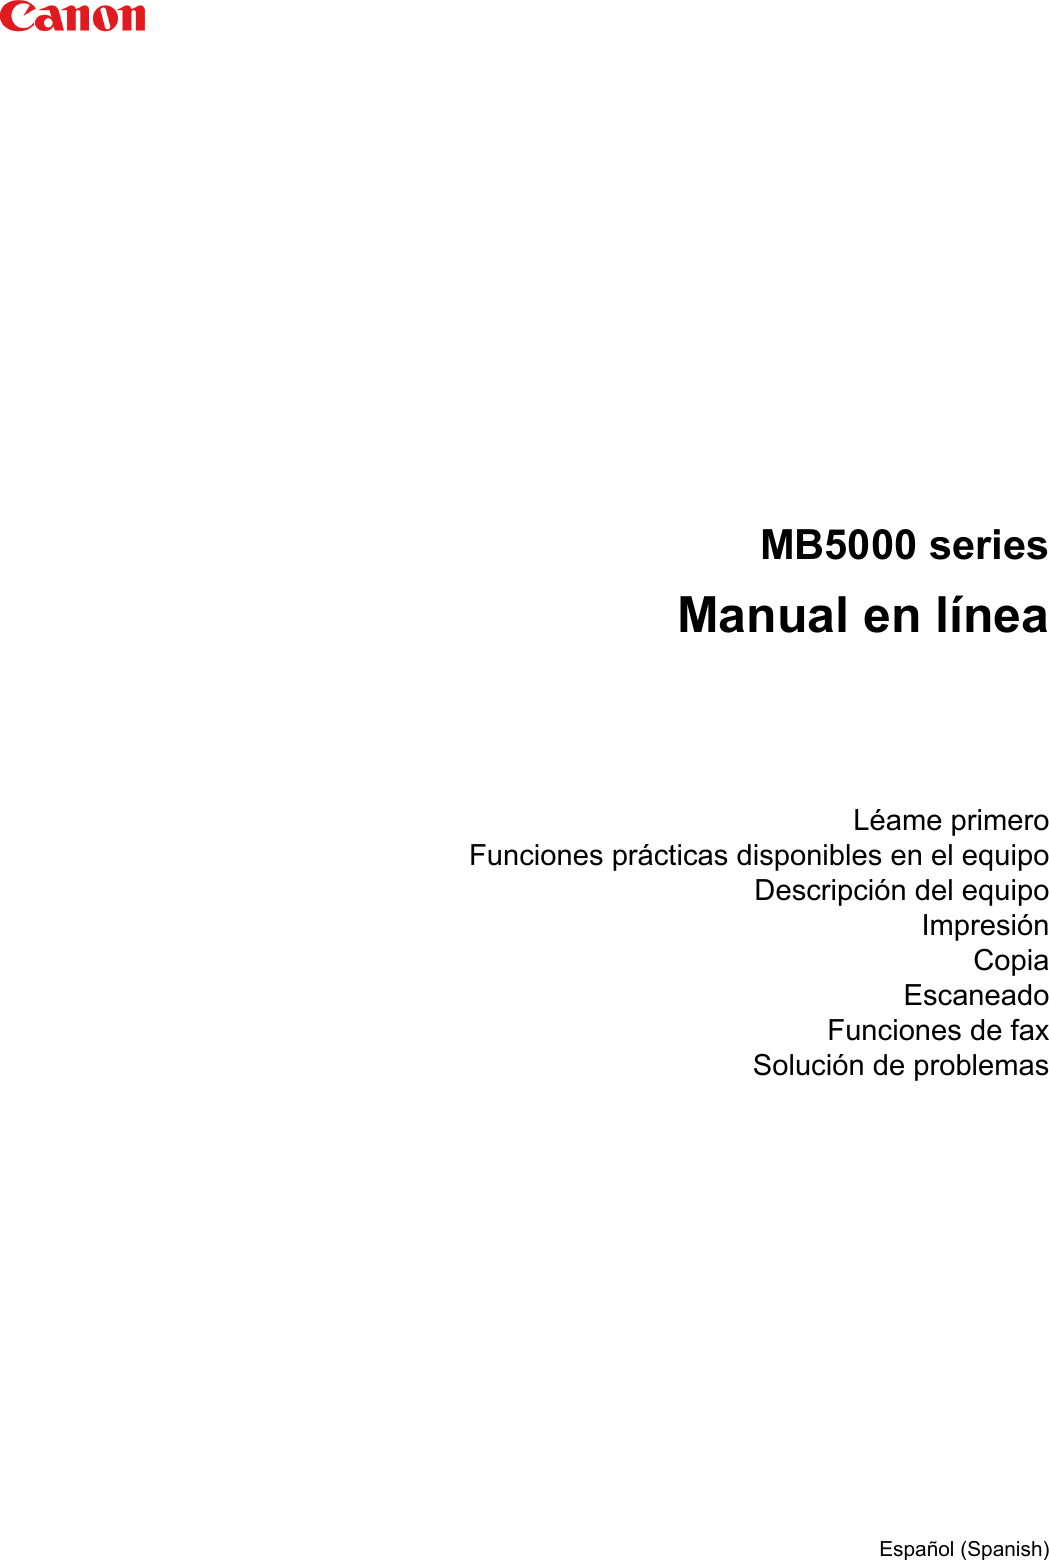 Canon Maxify Mb5020 Manual For Windows